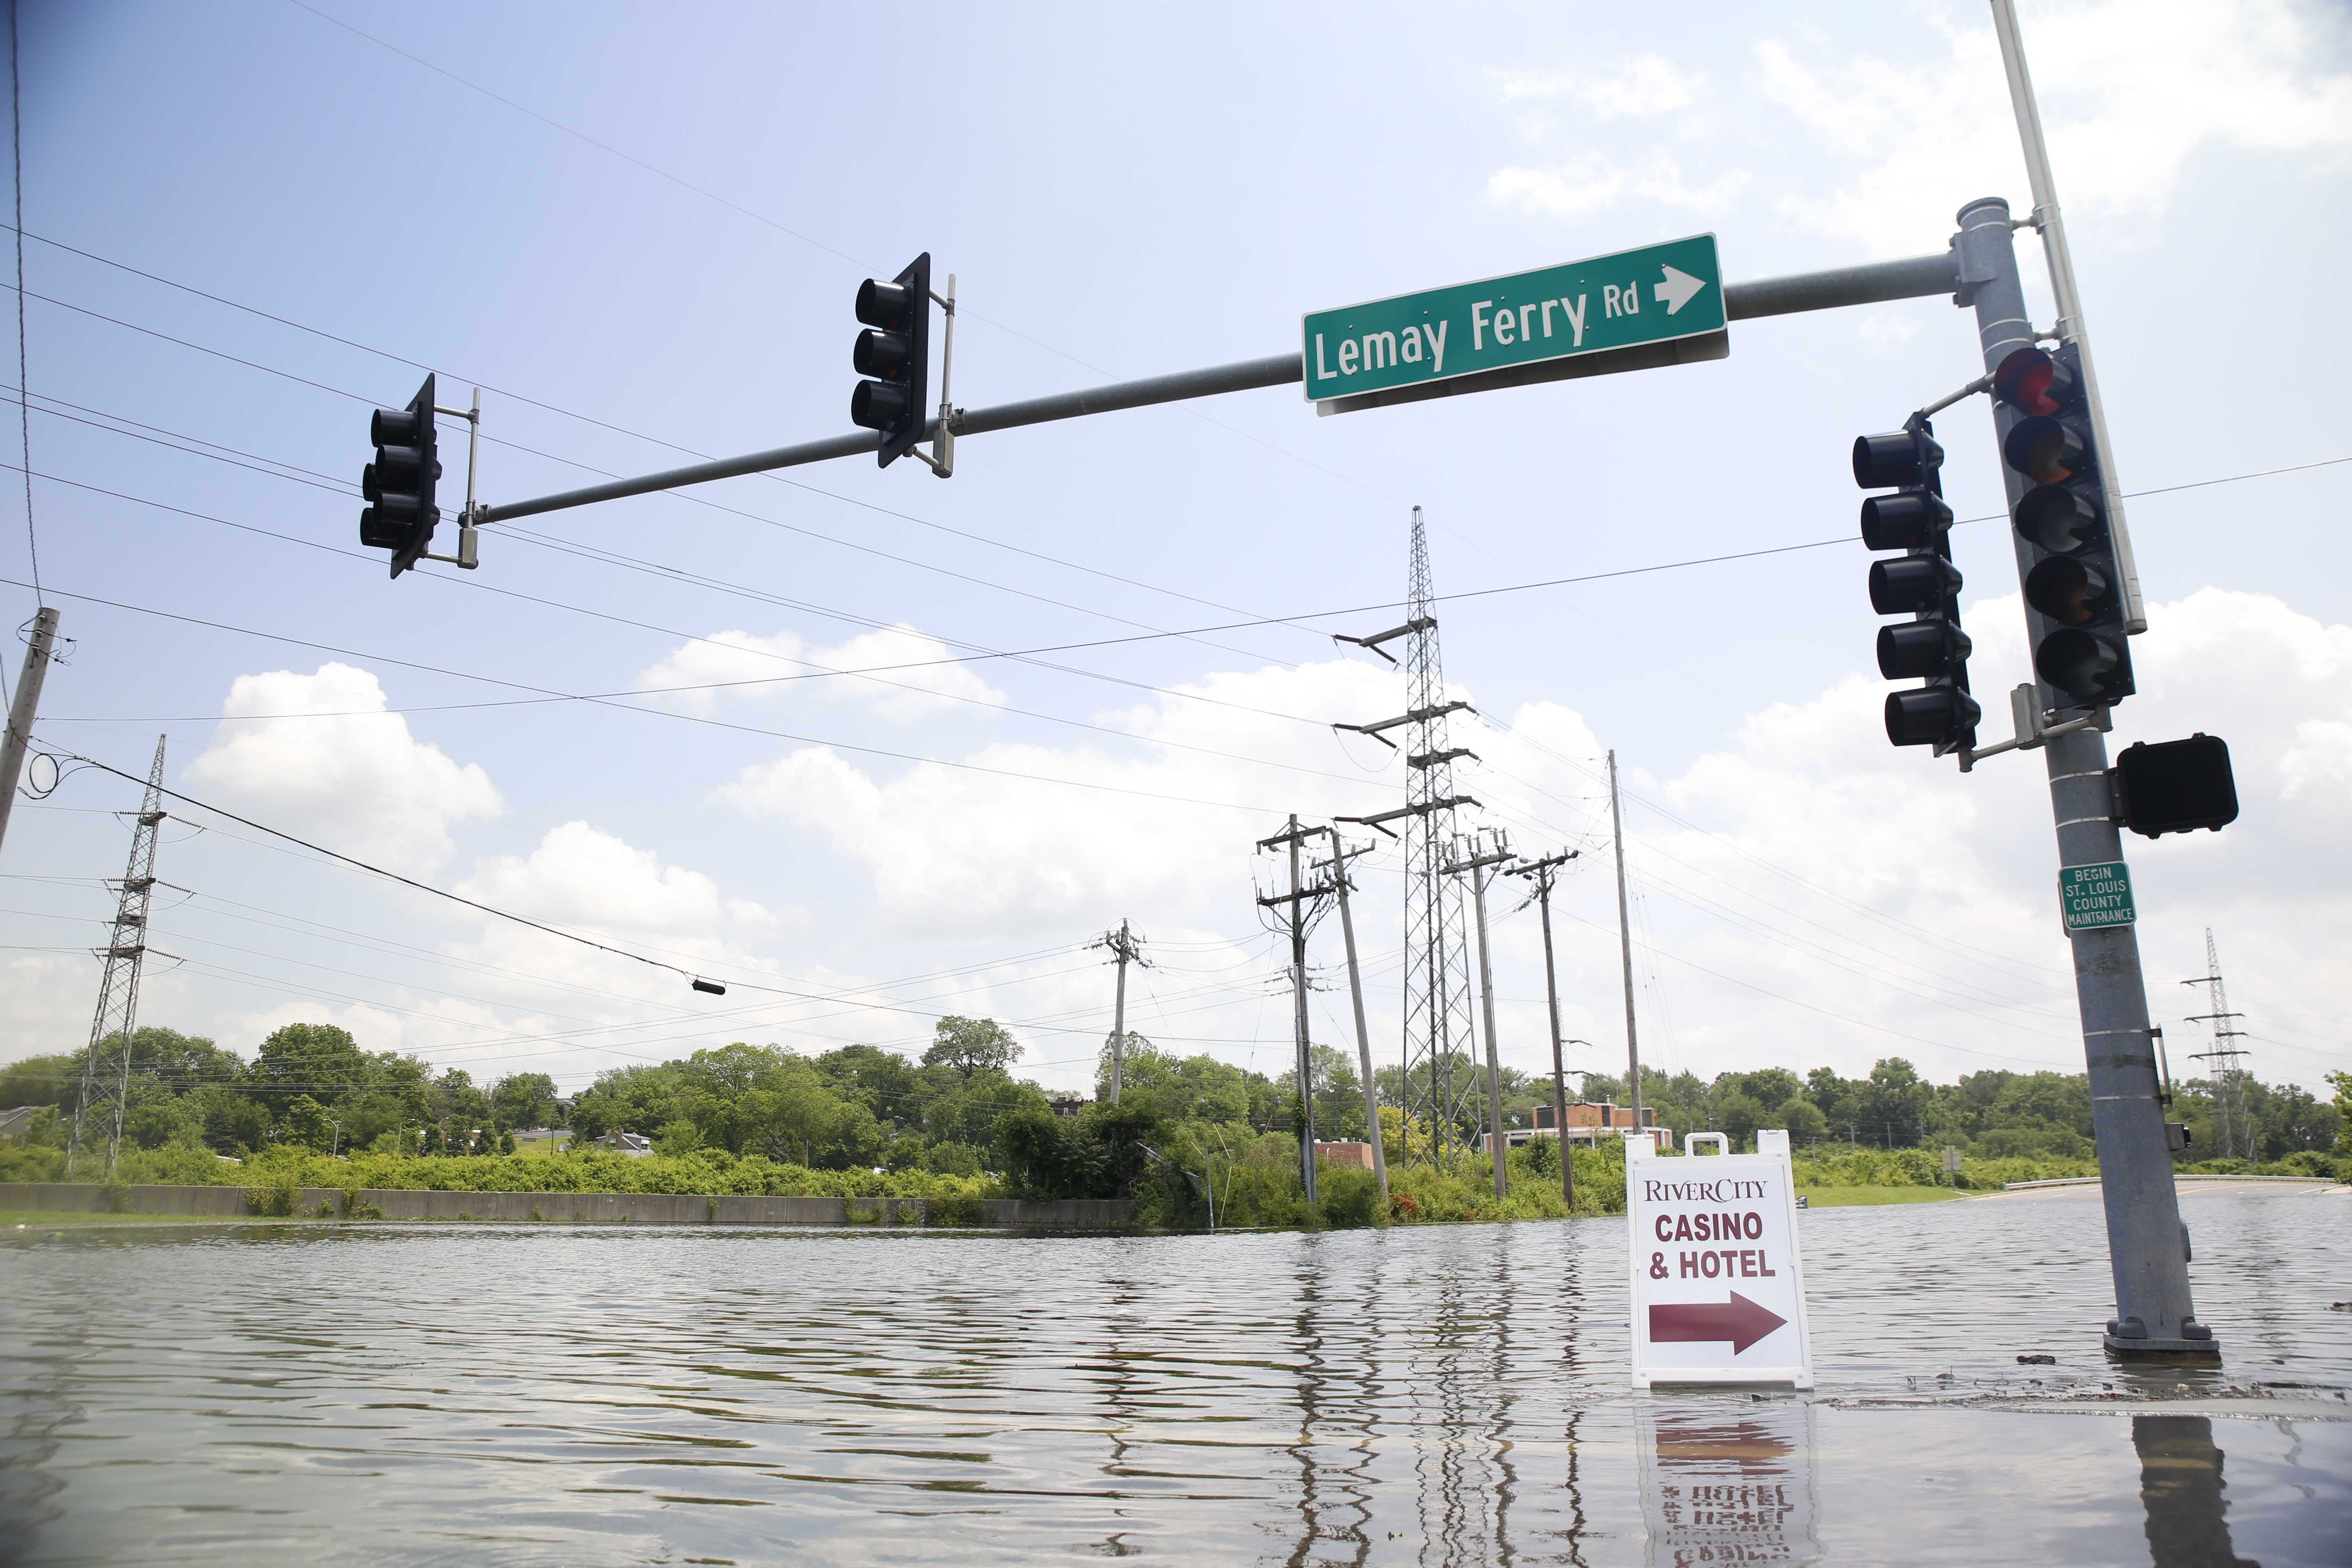 City can handle predicted River des Peres crest, official says